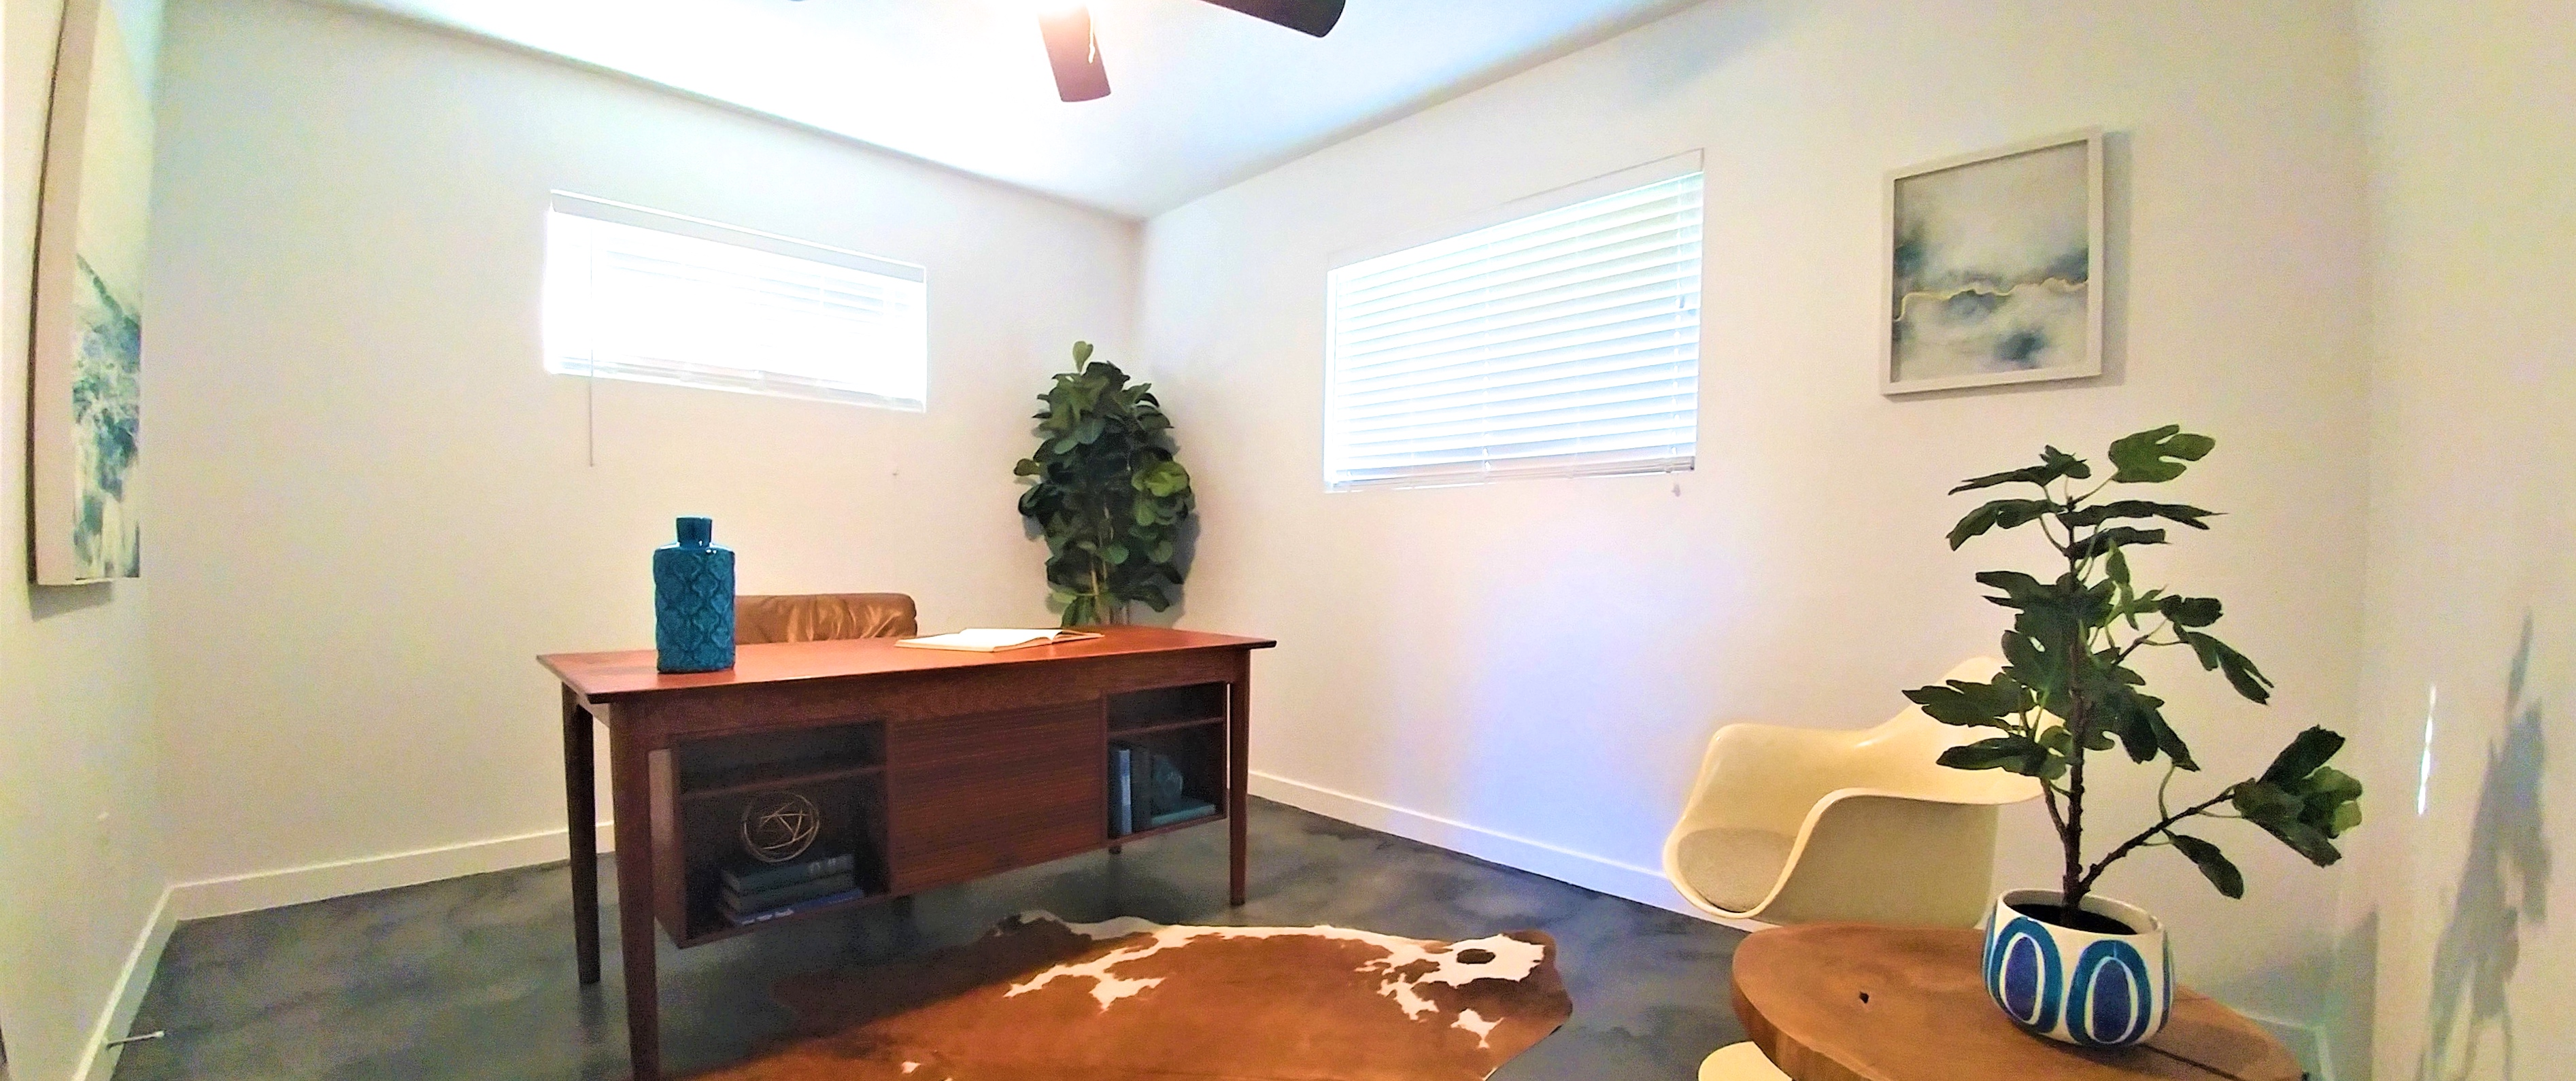 1501 E Rovey Ave, Phoenix, AZ 85014 | Uptown Phoenix Apartments For Rent